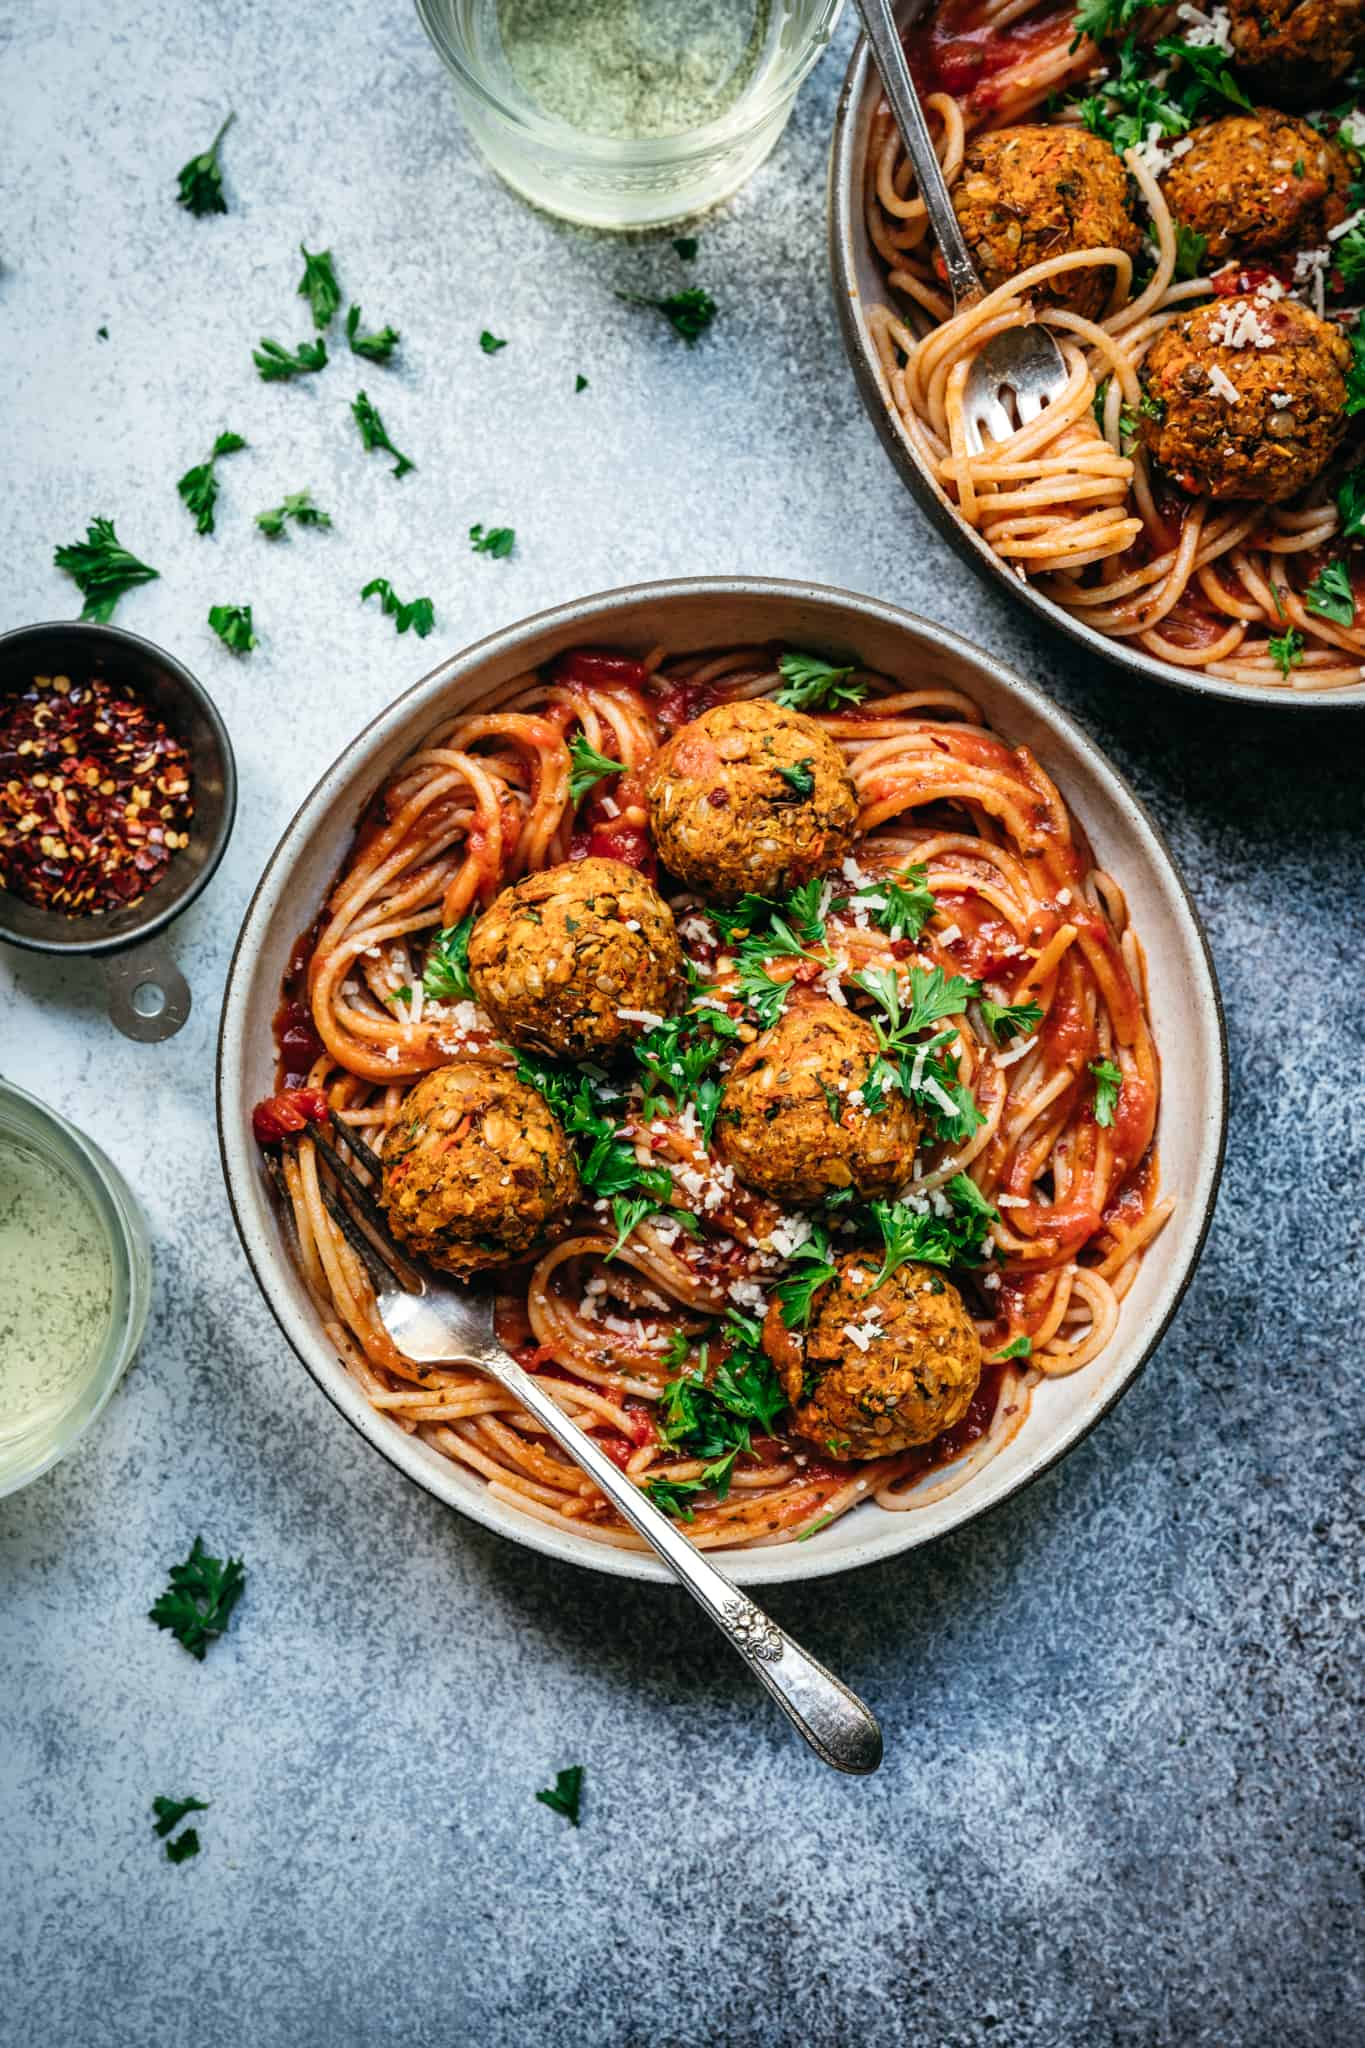 overhead of vegan lentil meatballs in red sauce with spaghetti in a bowl